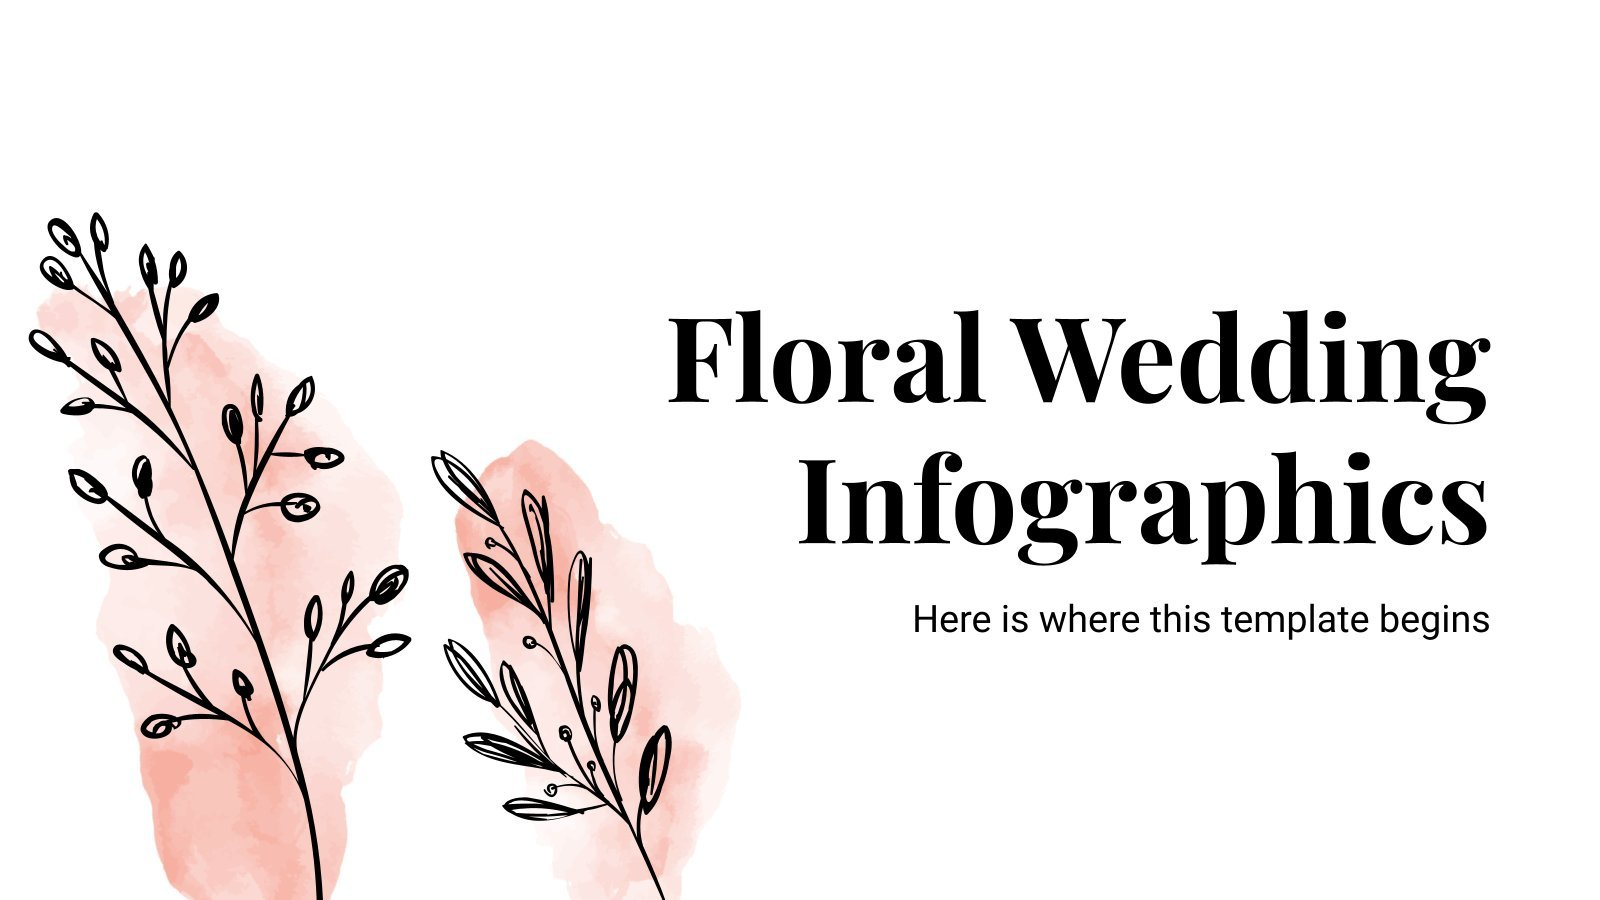 Floral Wedding Infographics presentation template